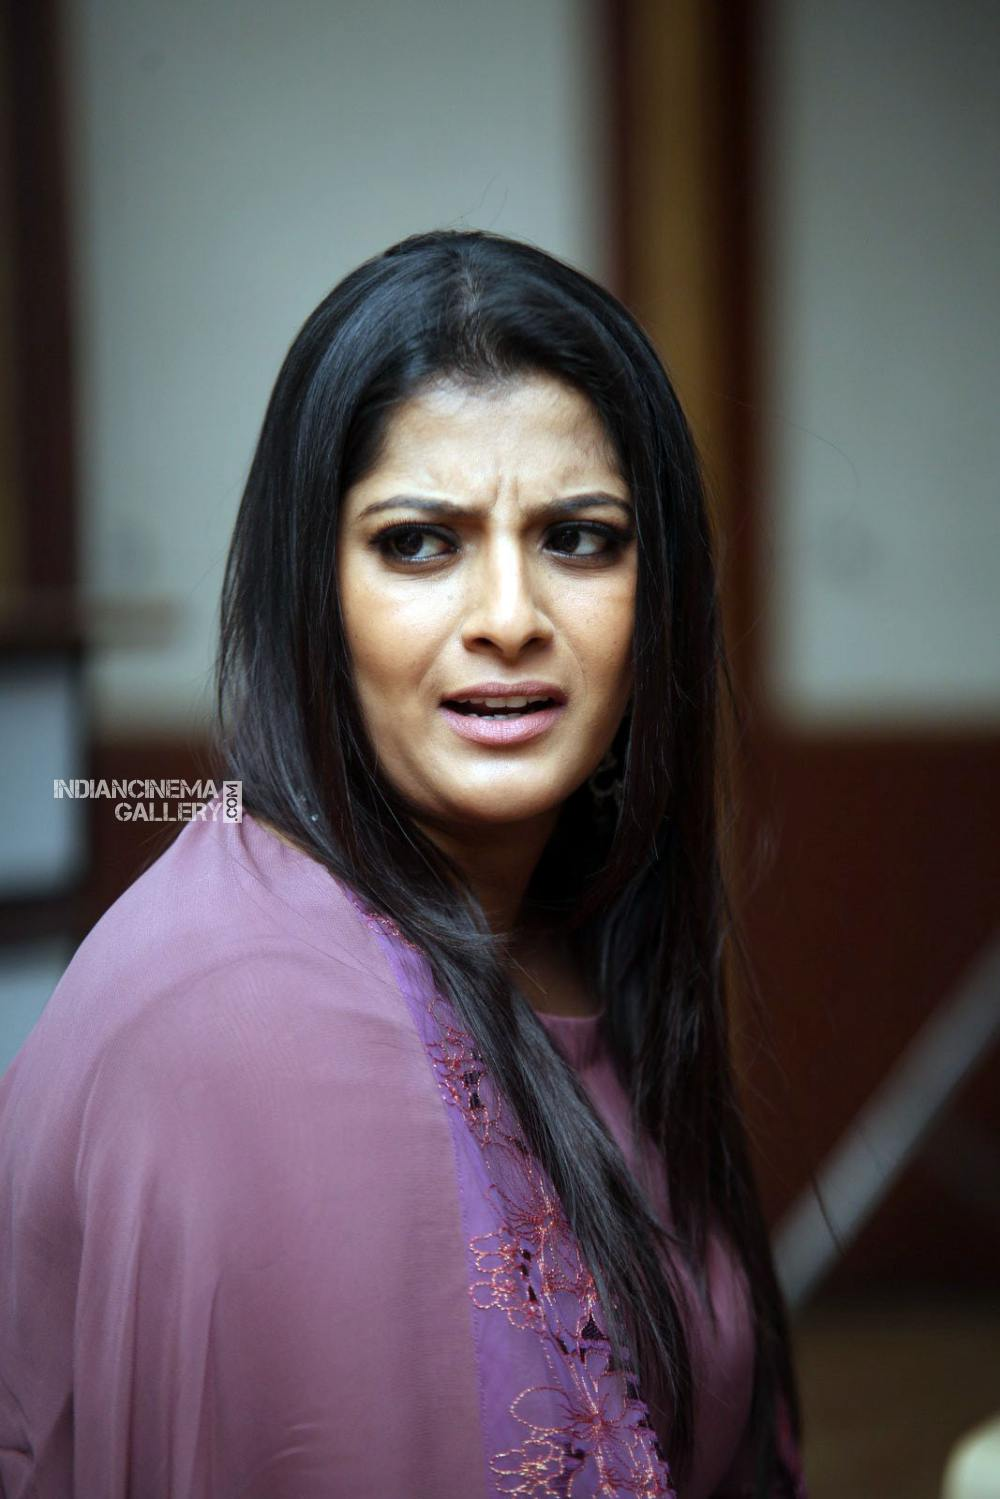 Varalakshmi sarathkumar during interview stills (15)